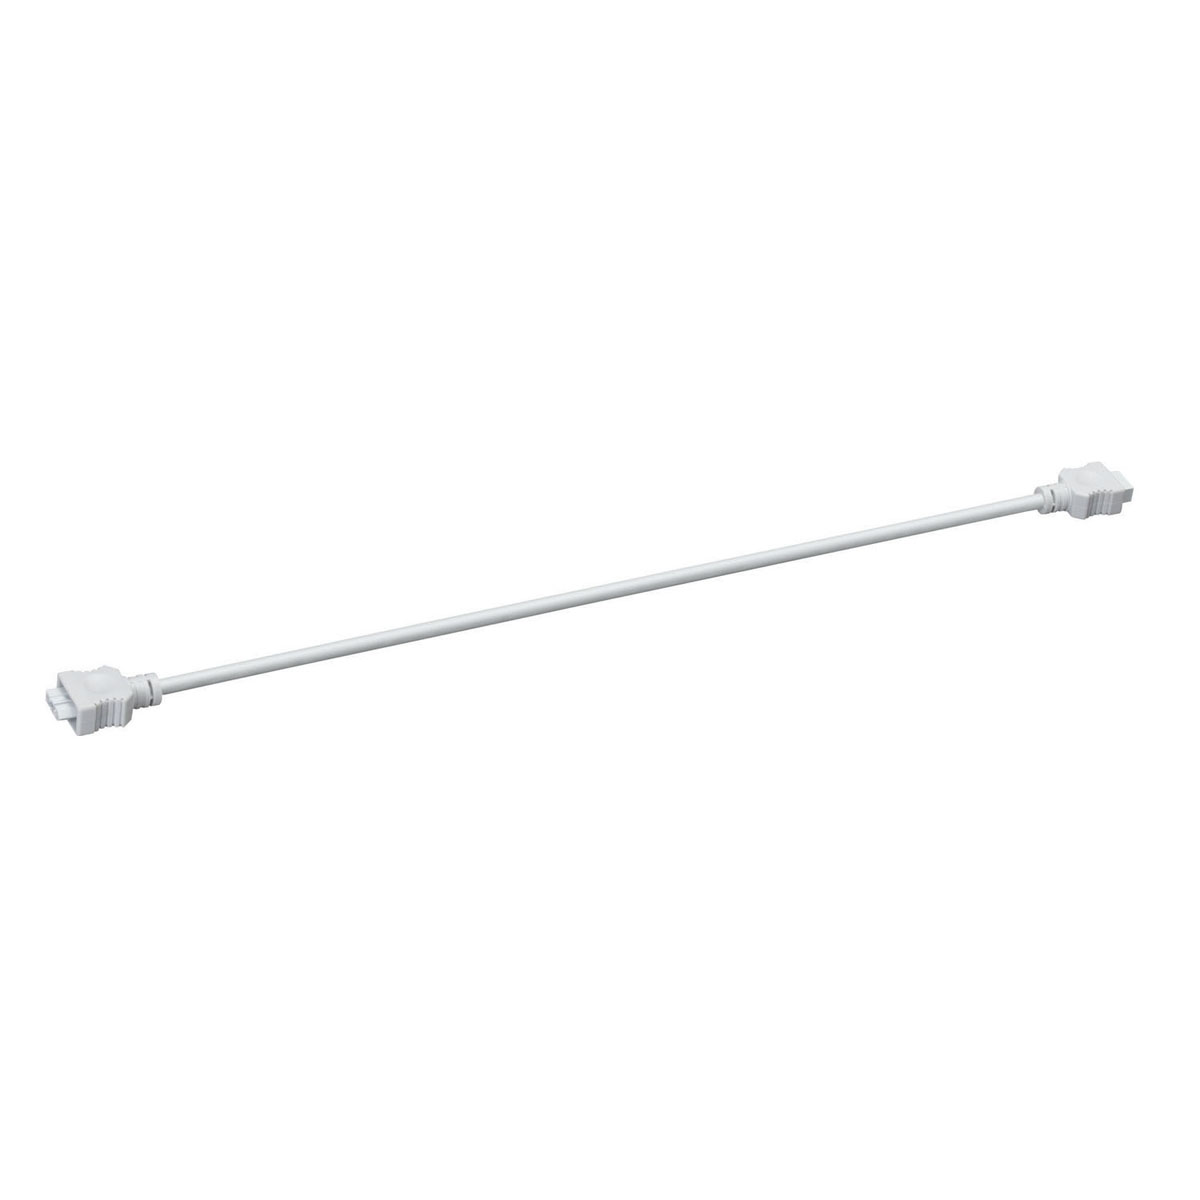 "Kichler Lighting (10573WH) 21"" Interconnect Cable in White Material (Not Painted)"